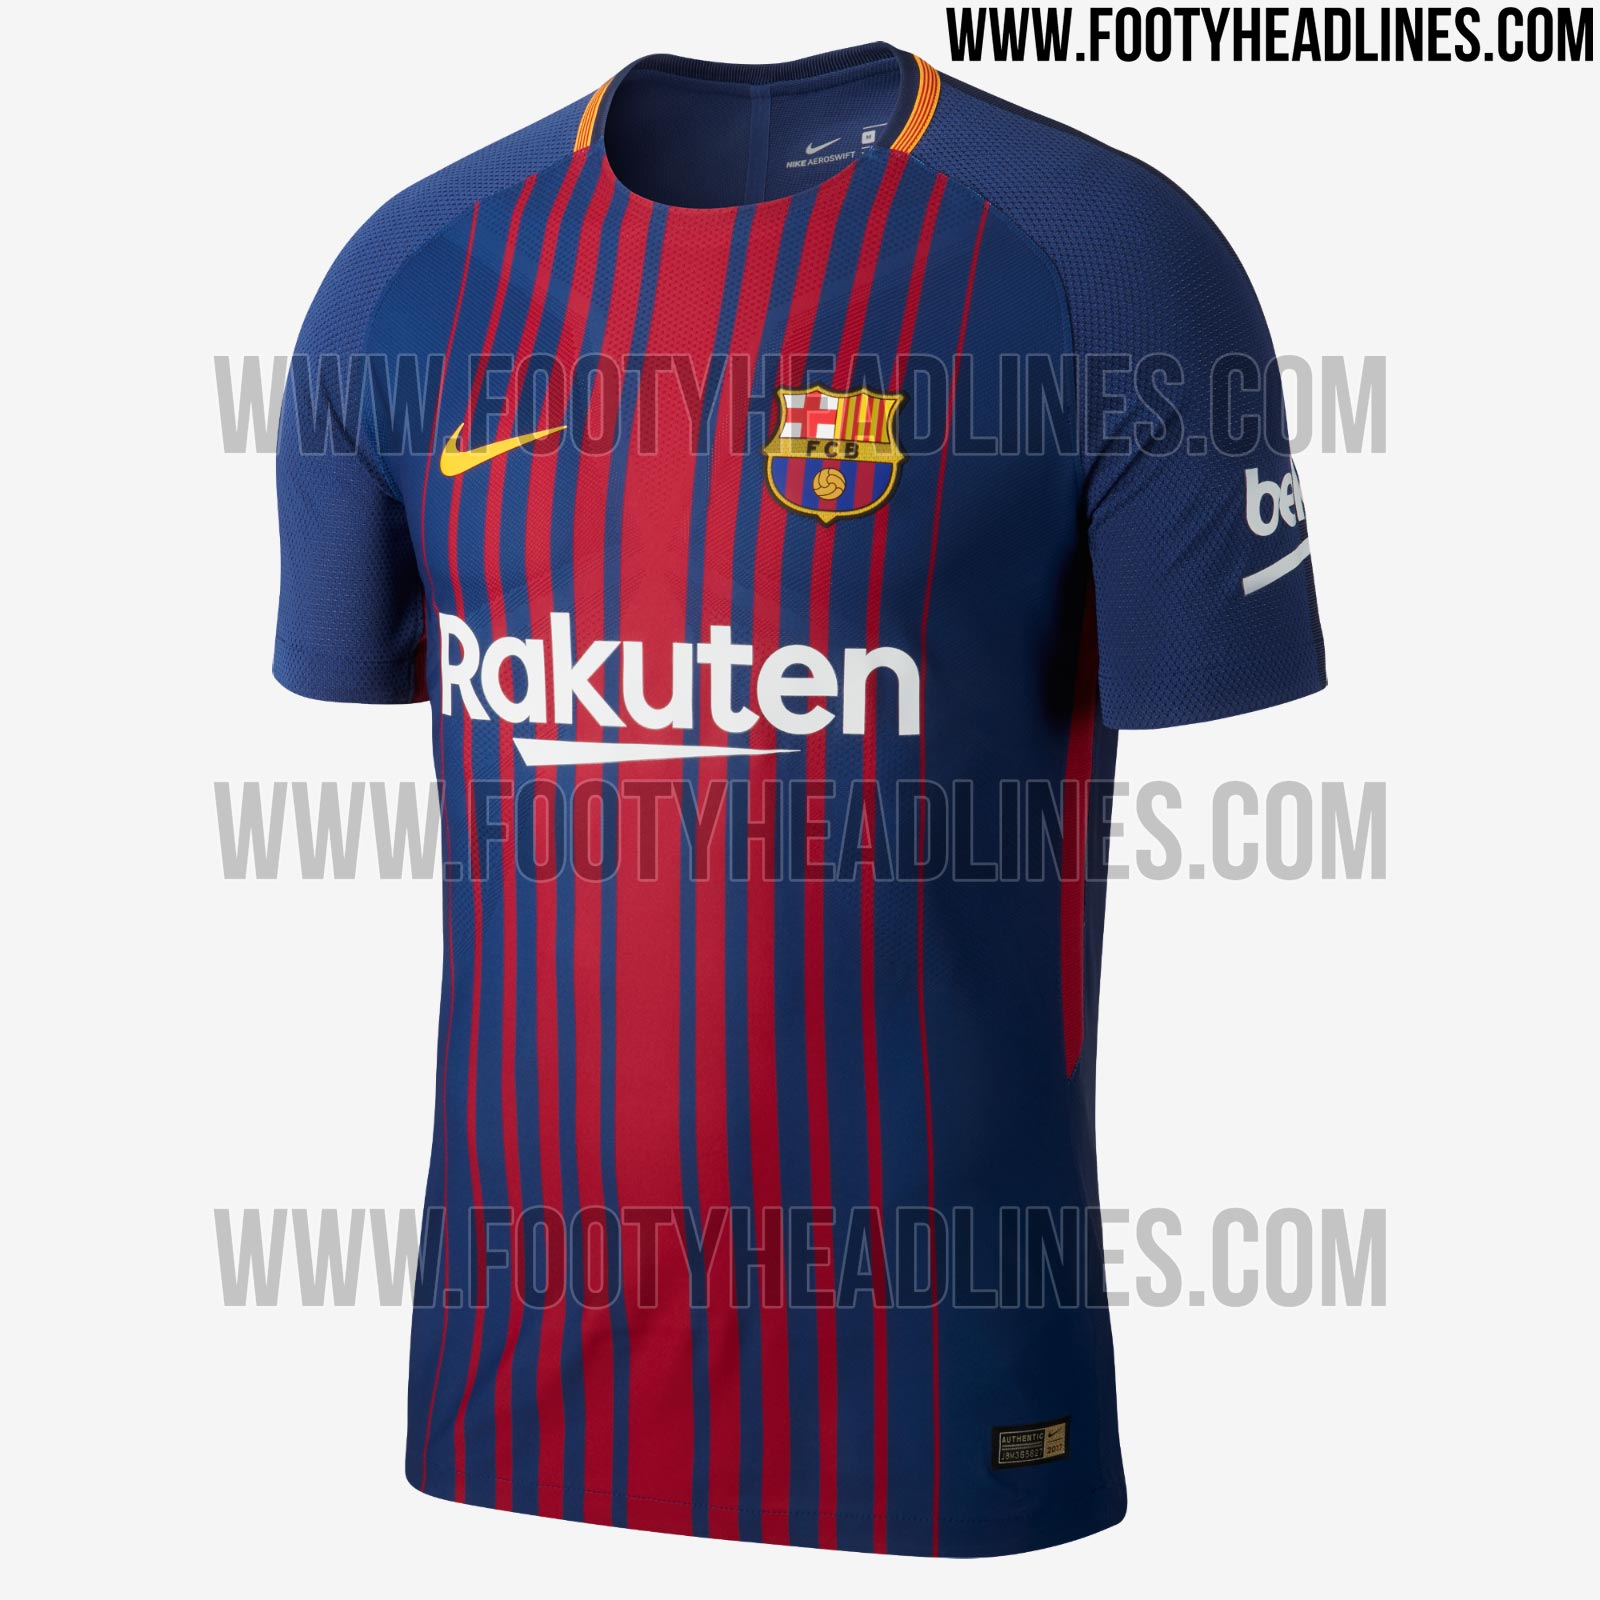 new style 273c5 18cd0 barcelona new jersey